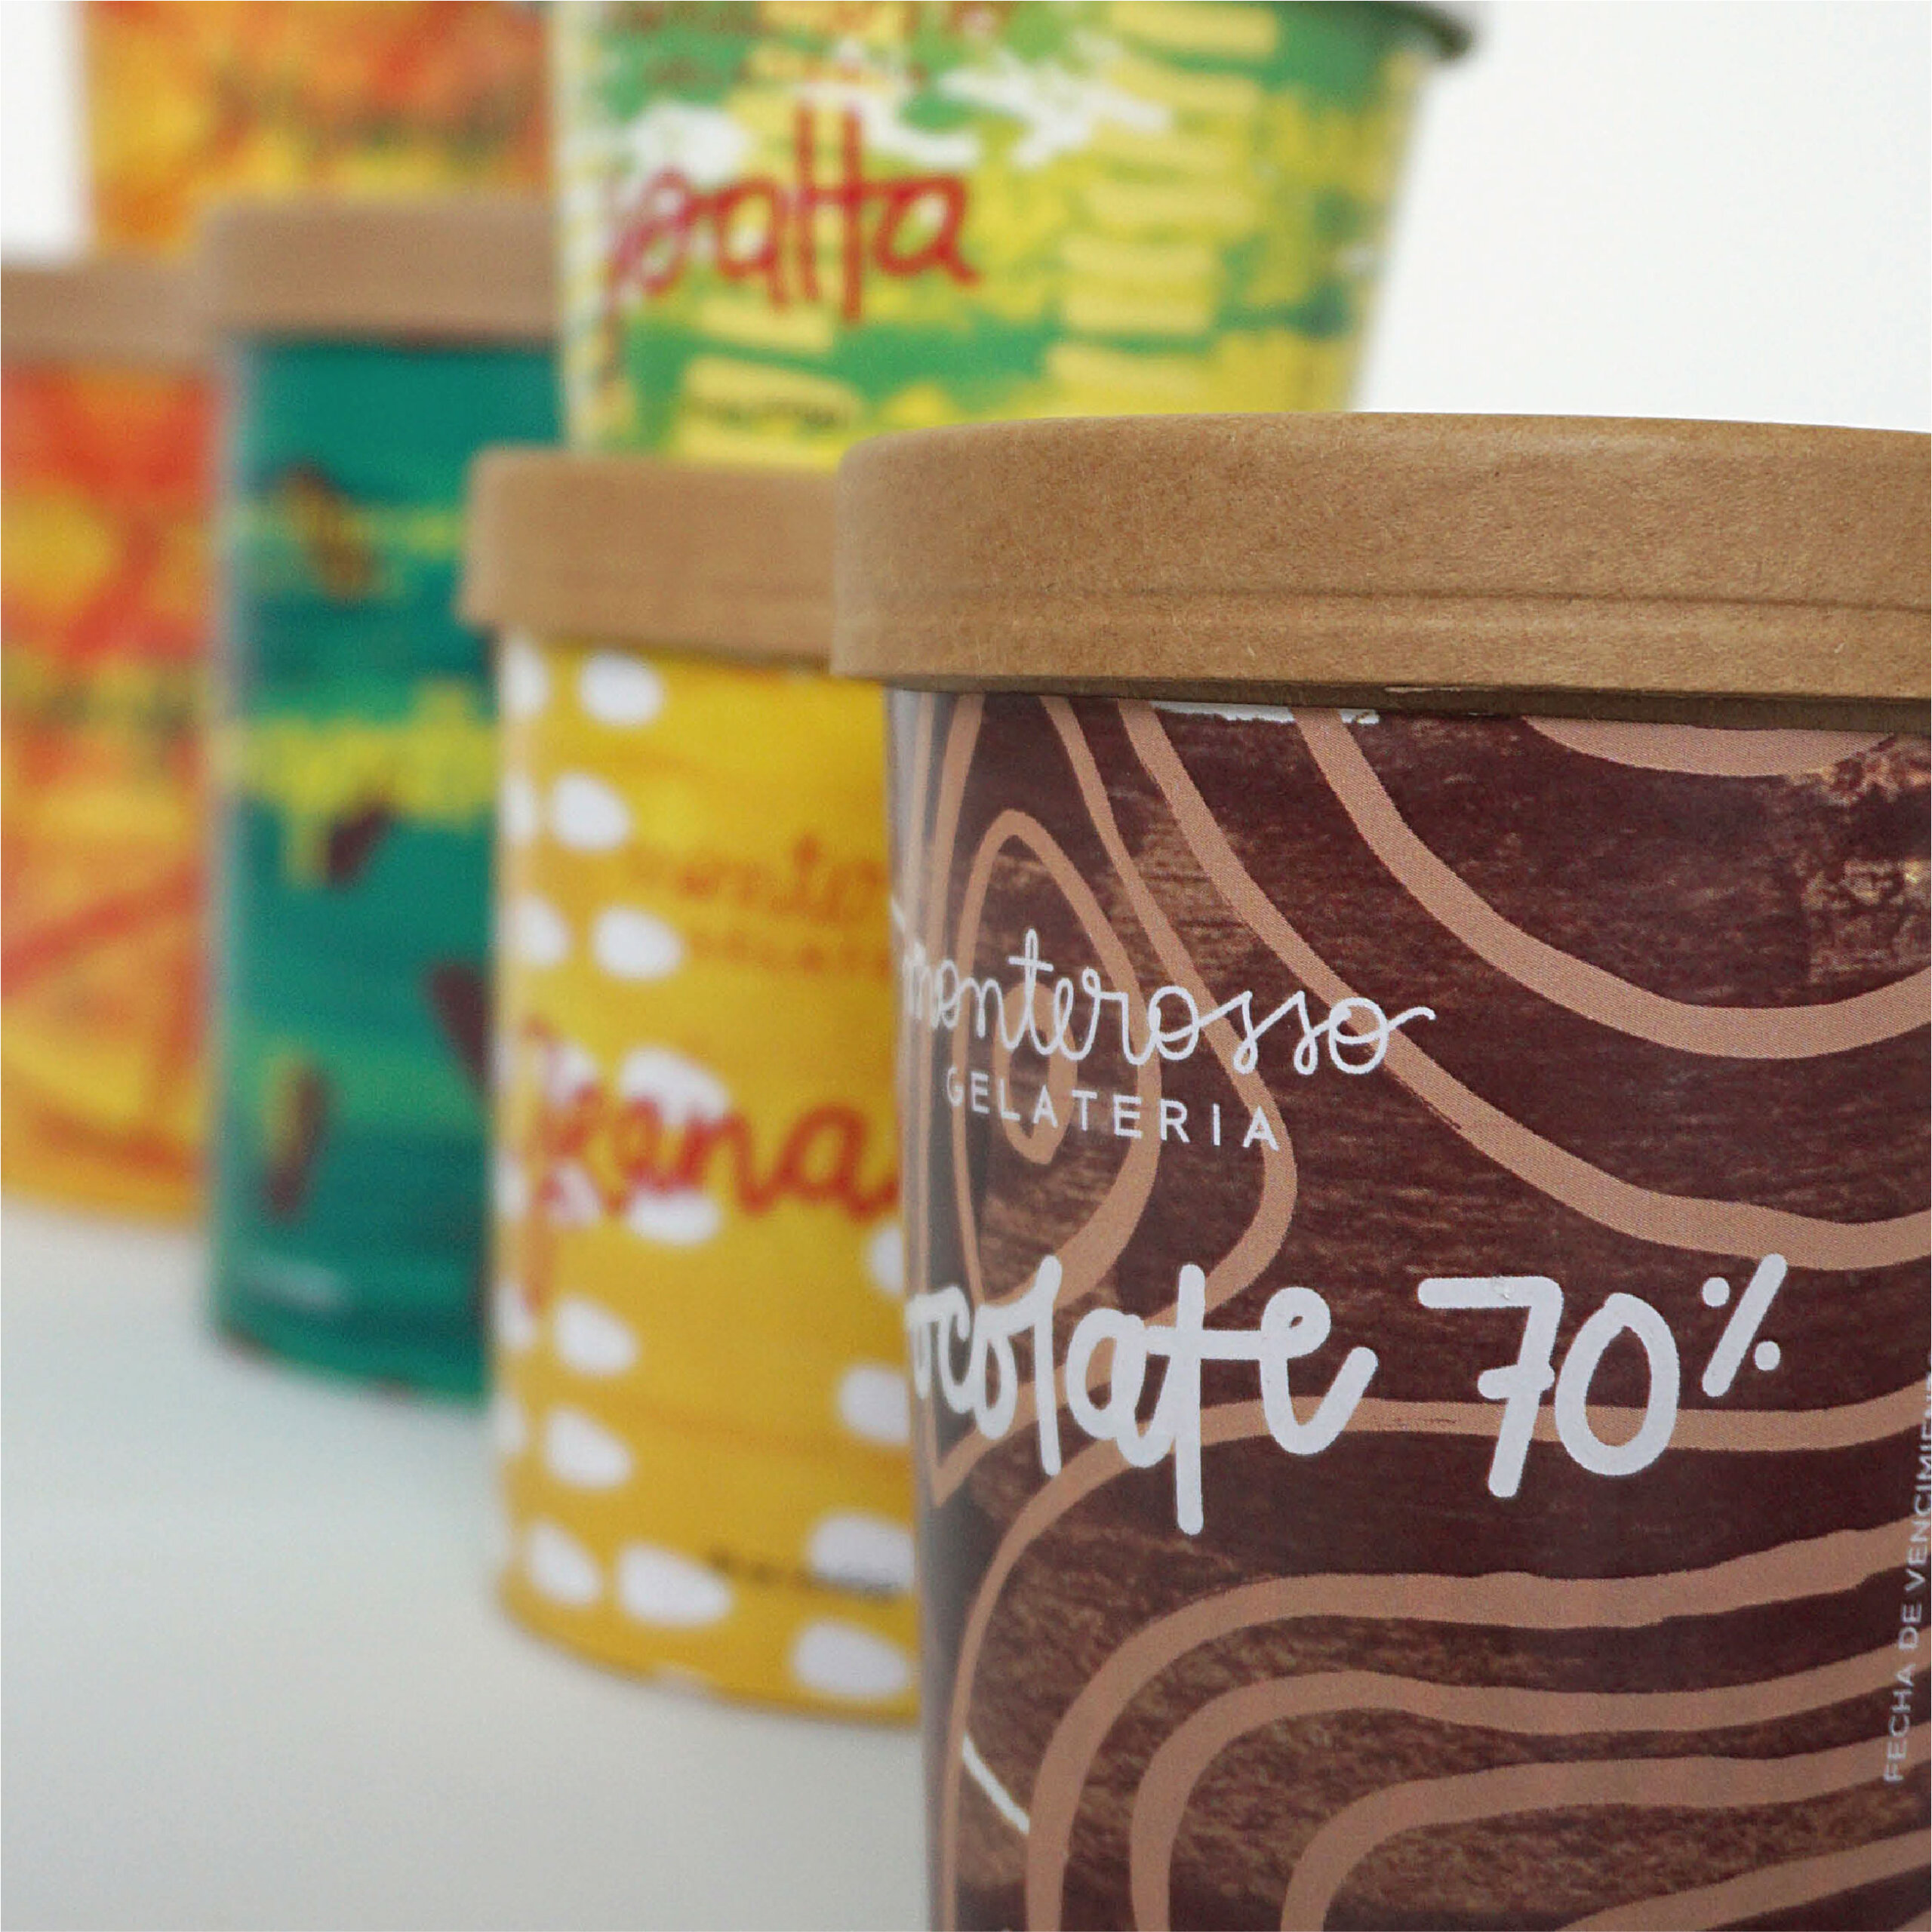 Nuova veste grafica per i packaging | Monterosso Gelateria